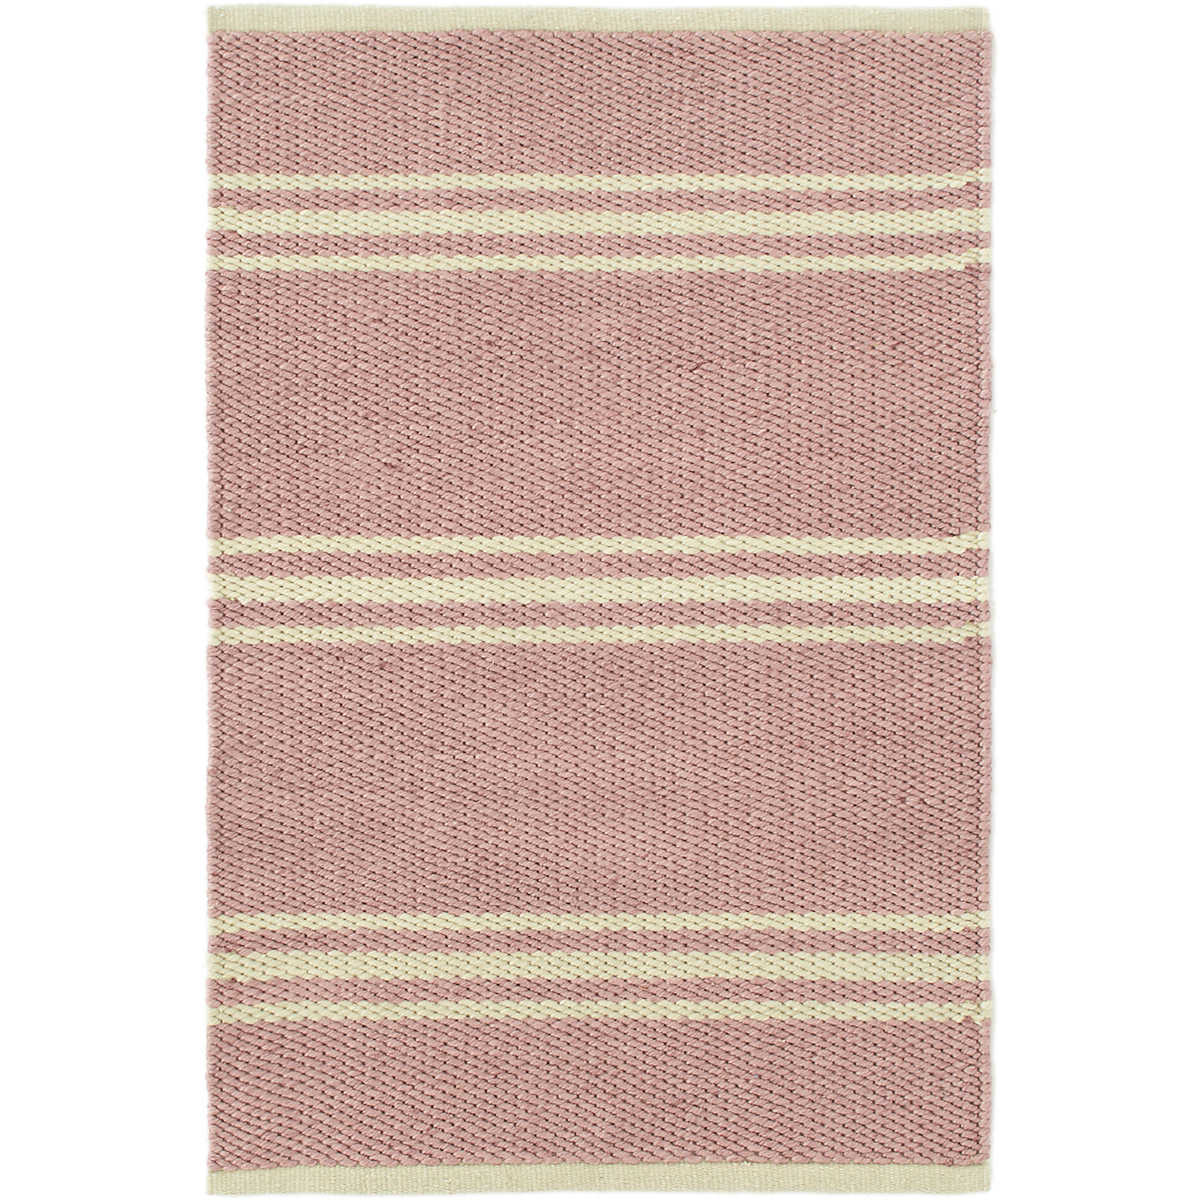 shopping rug at on quotations get mat kitchen area cheap door bath gray deals guides line decorative pink find